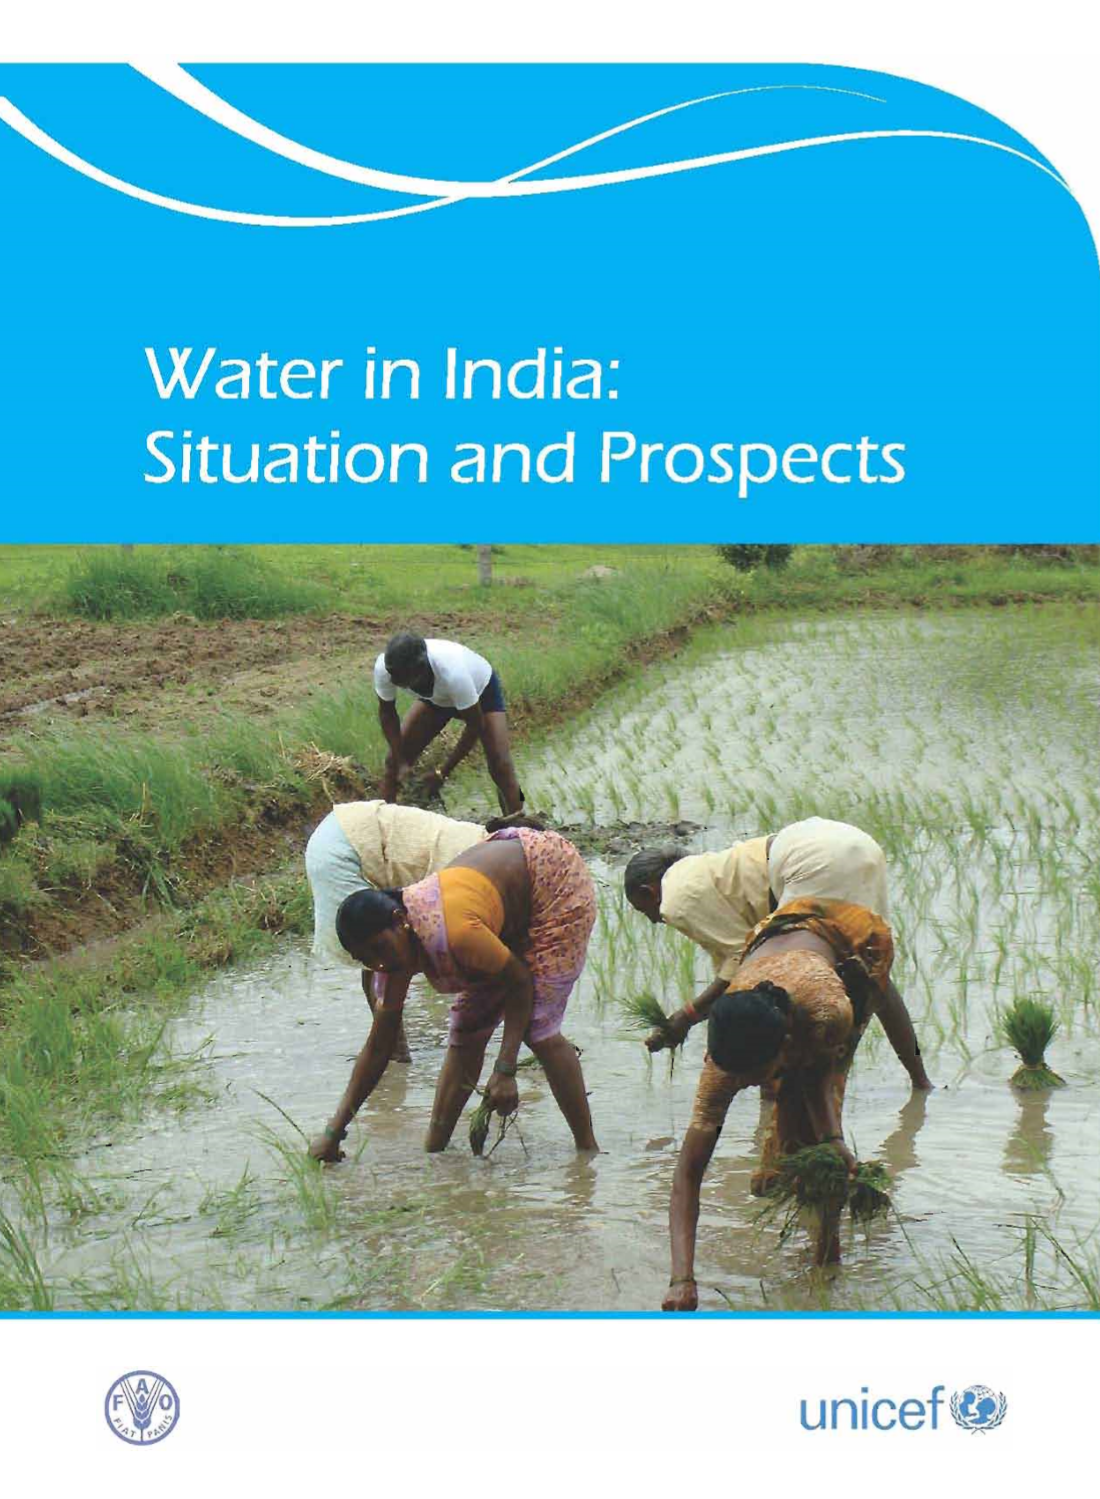 Water in India: Situation and Prospects